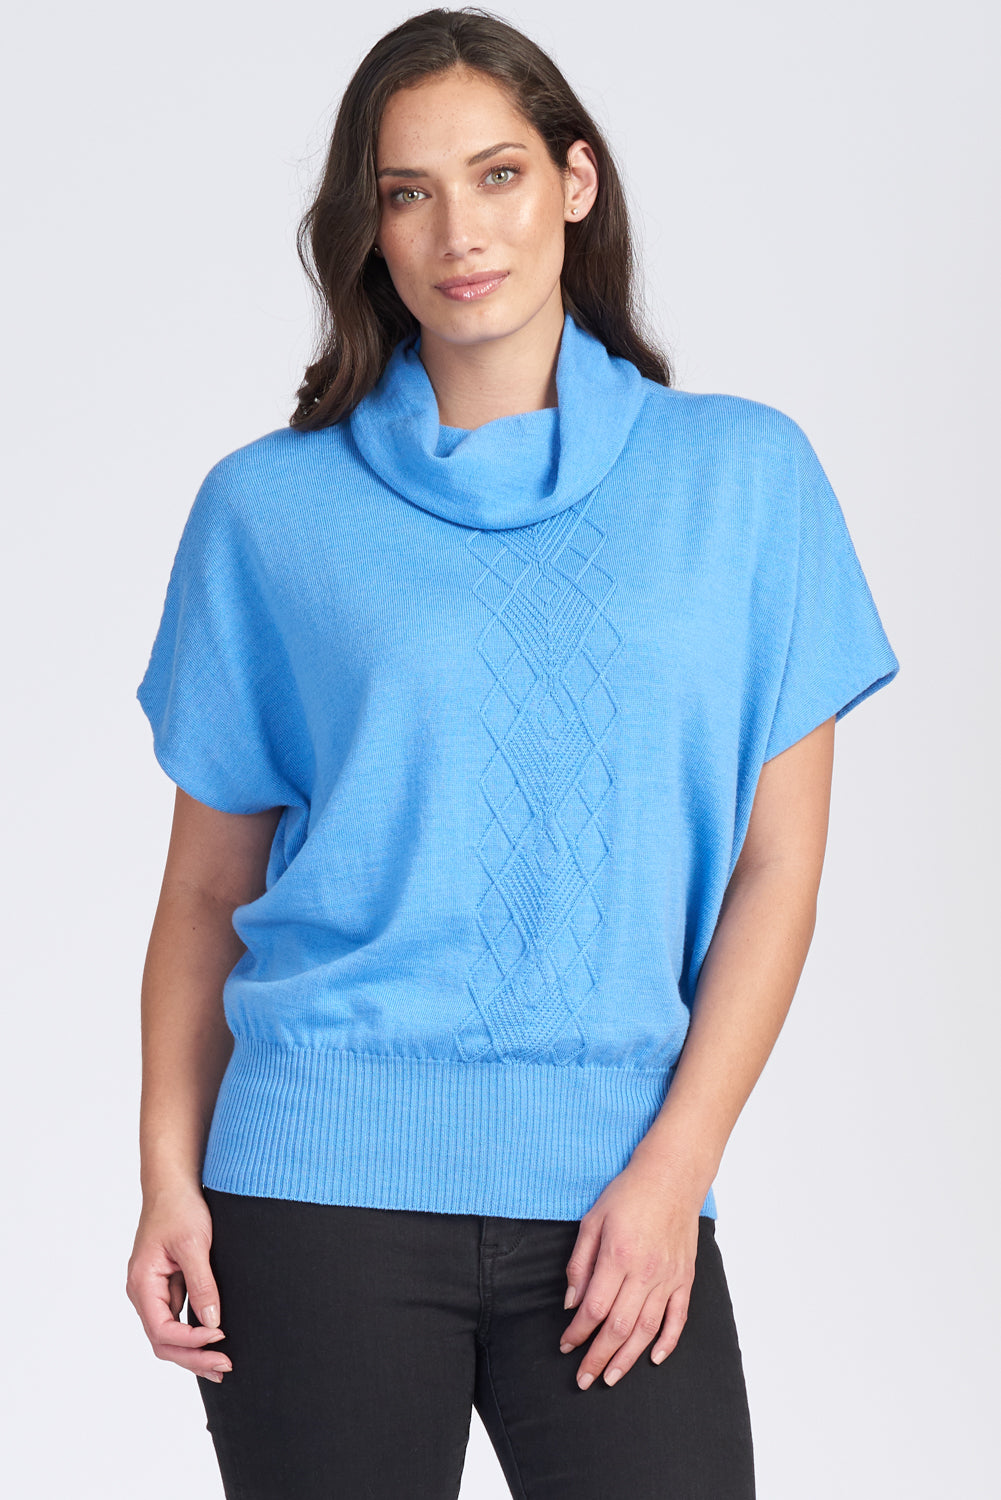 S/S Arran Front Cowl Neck Top